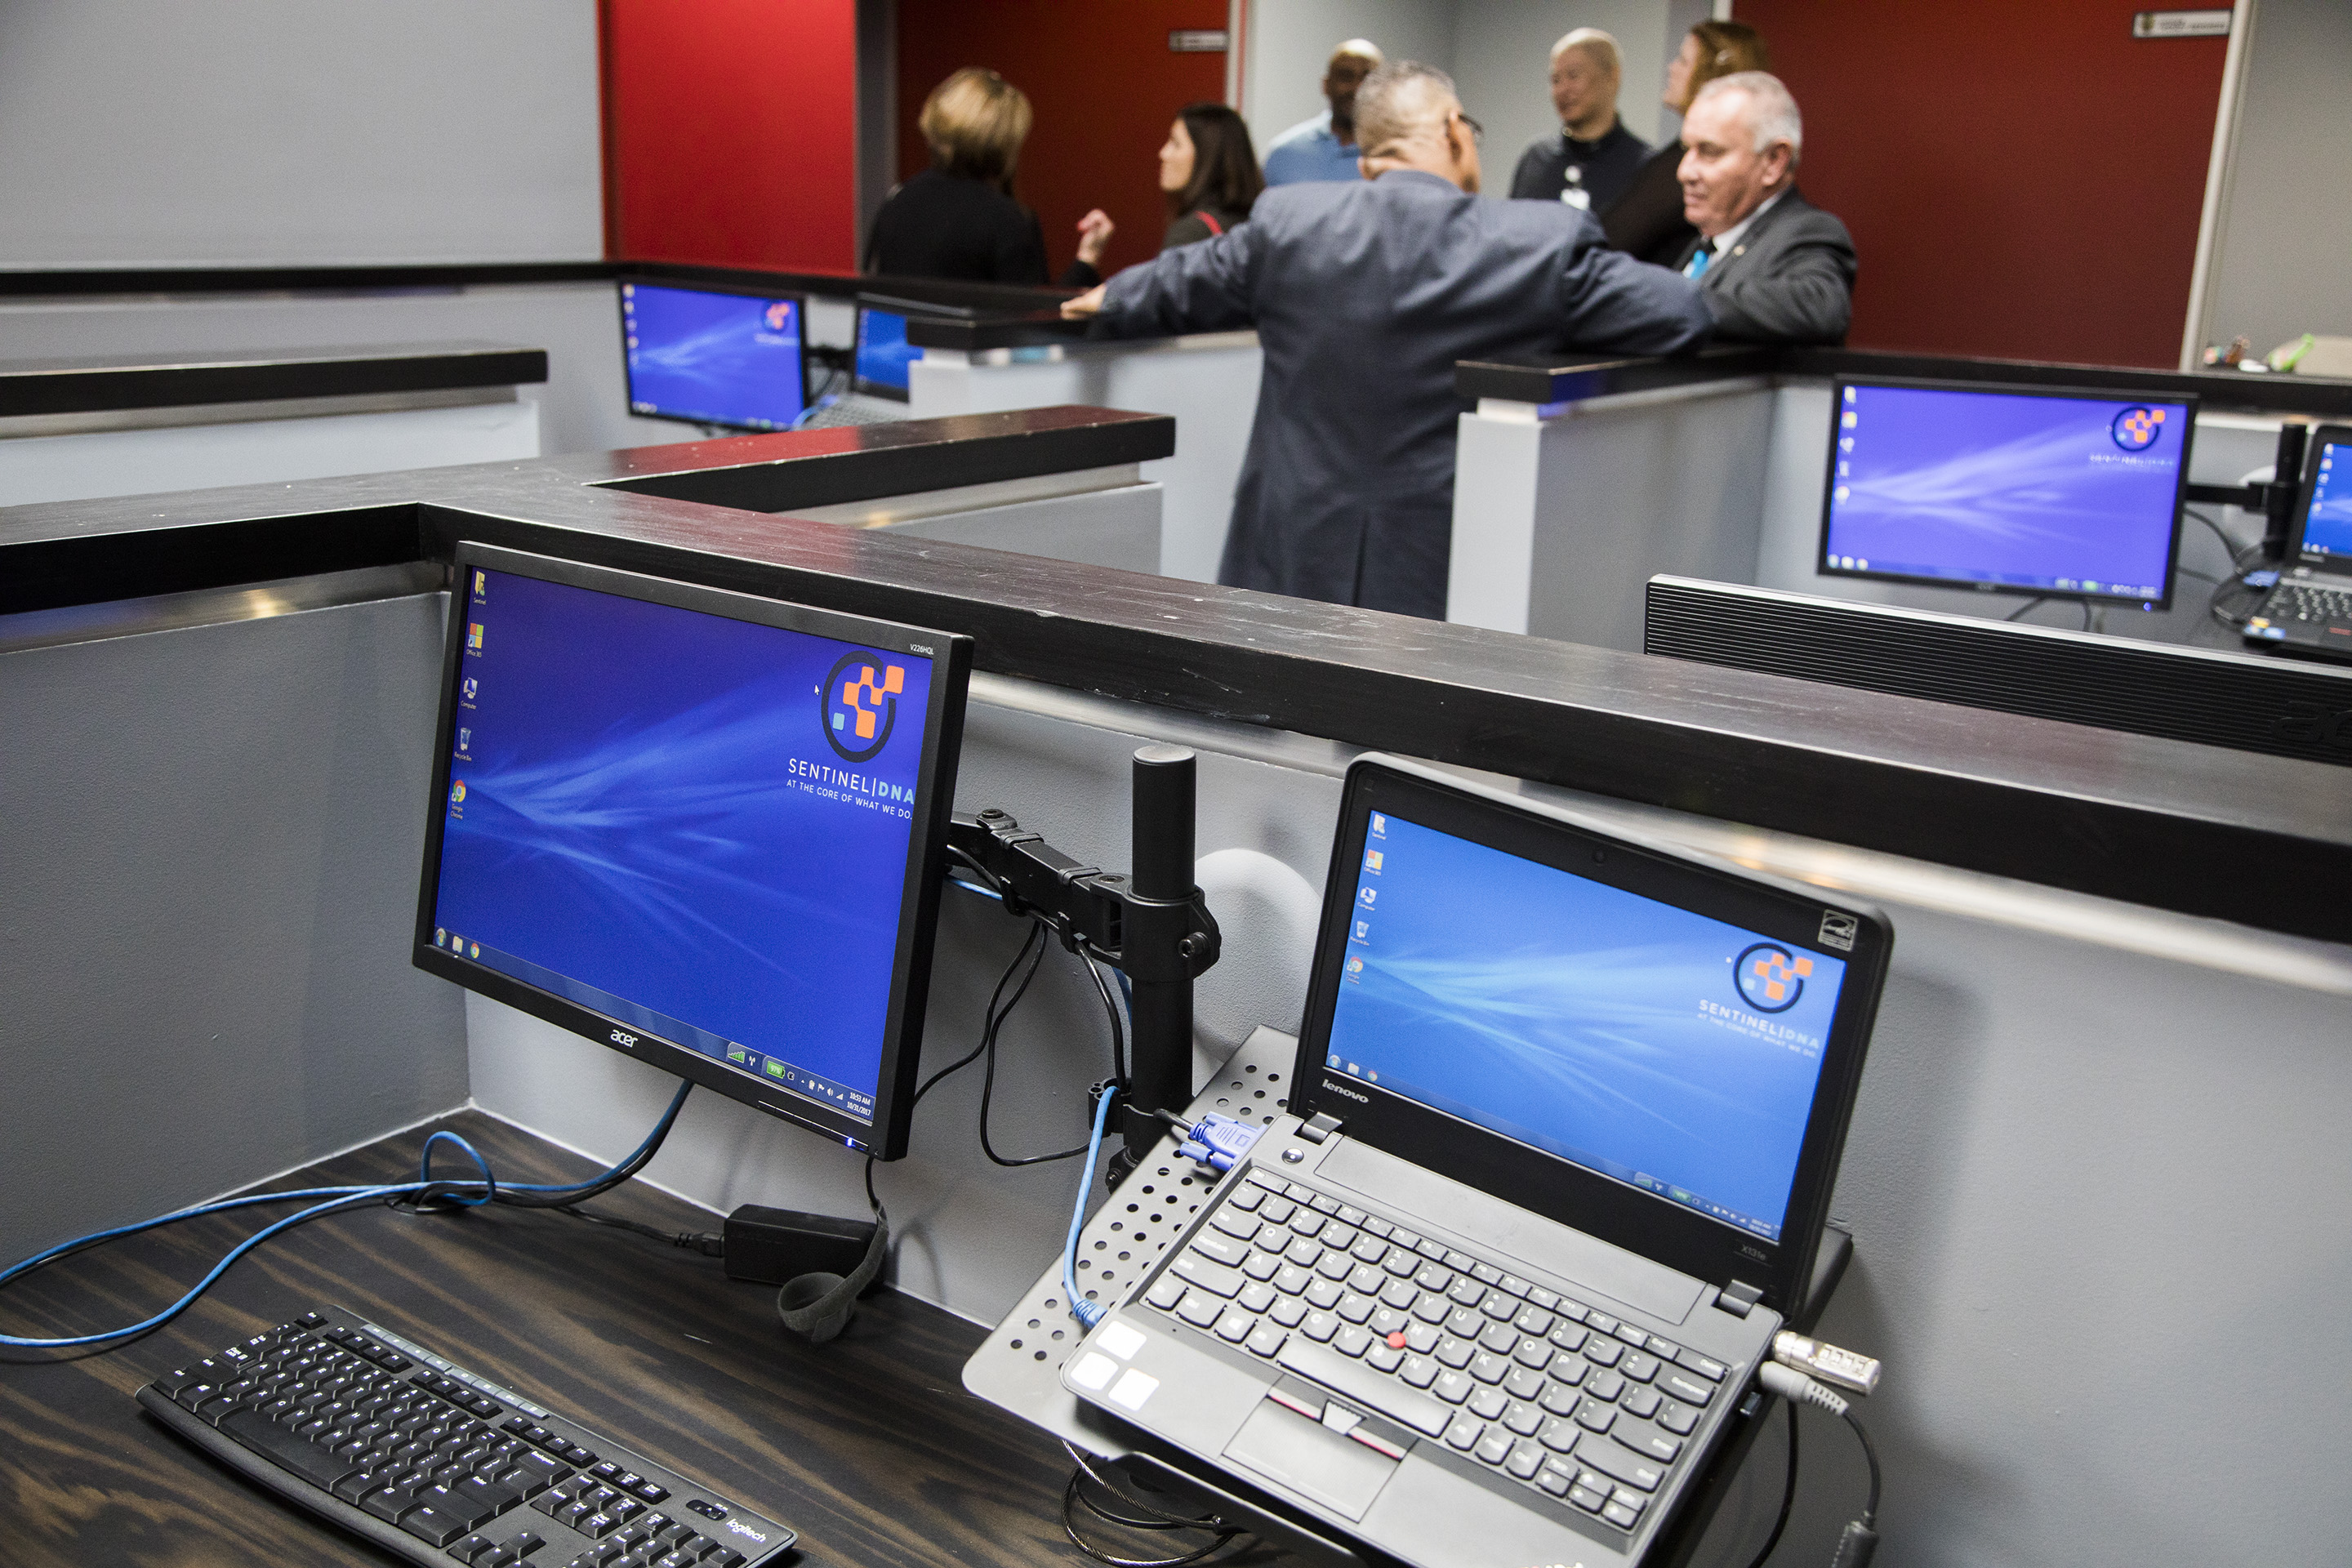 Four computers in a computer room